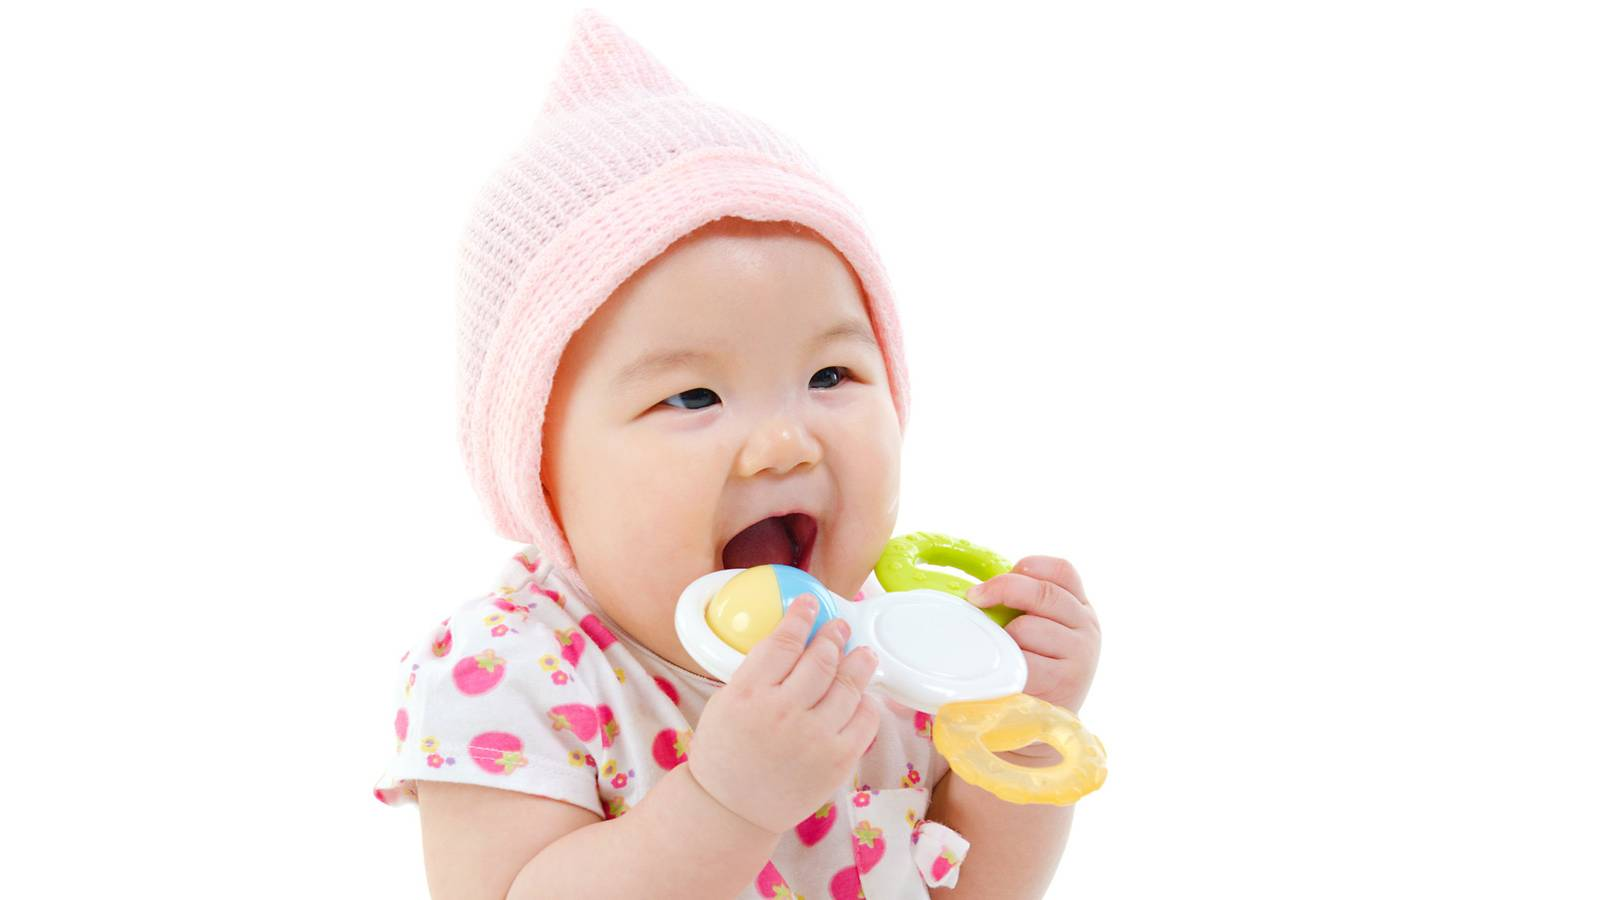 Babies-BUYERS'GUIDE-Top-Teethers-to-soothe-munchkin's-sore-gums-MAIN